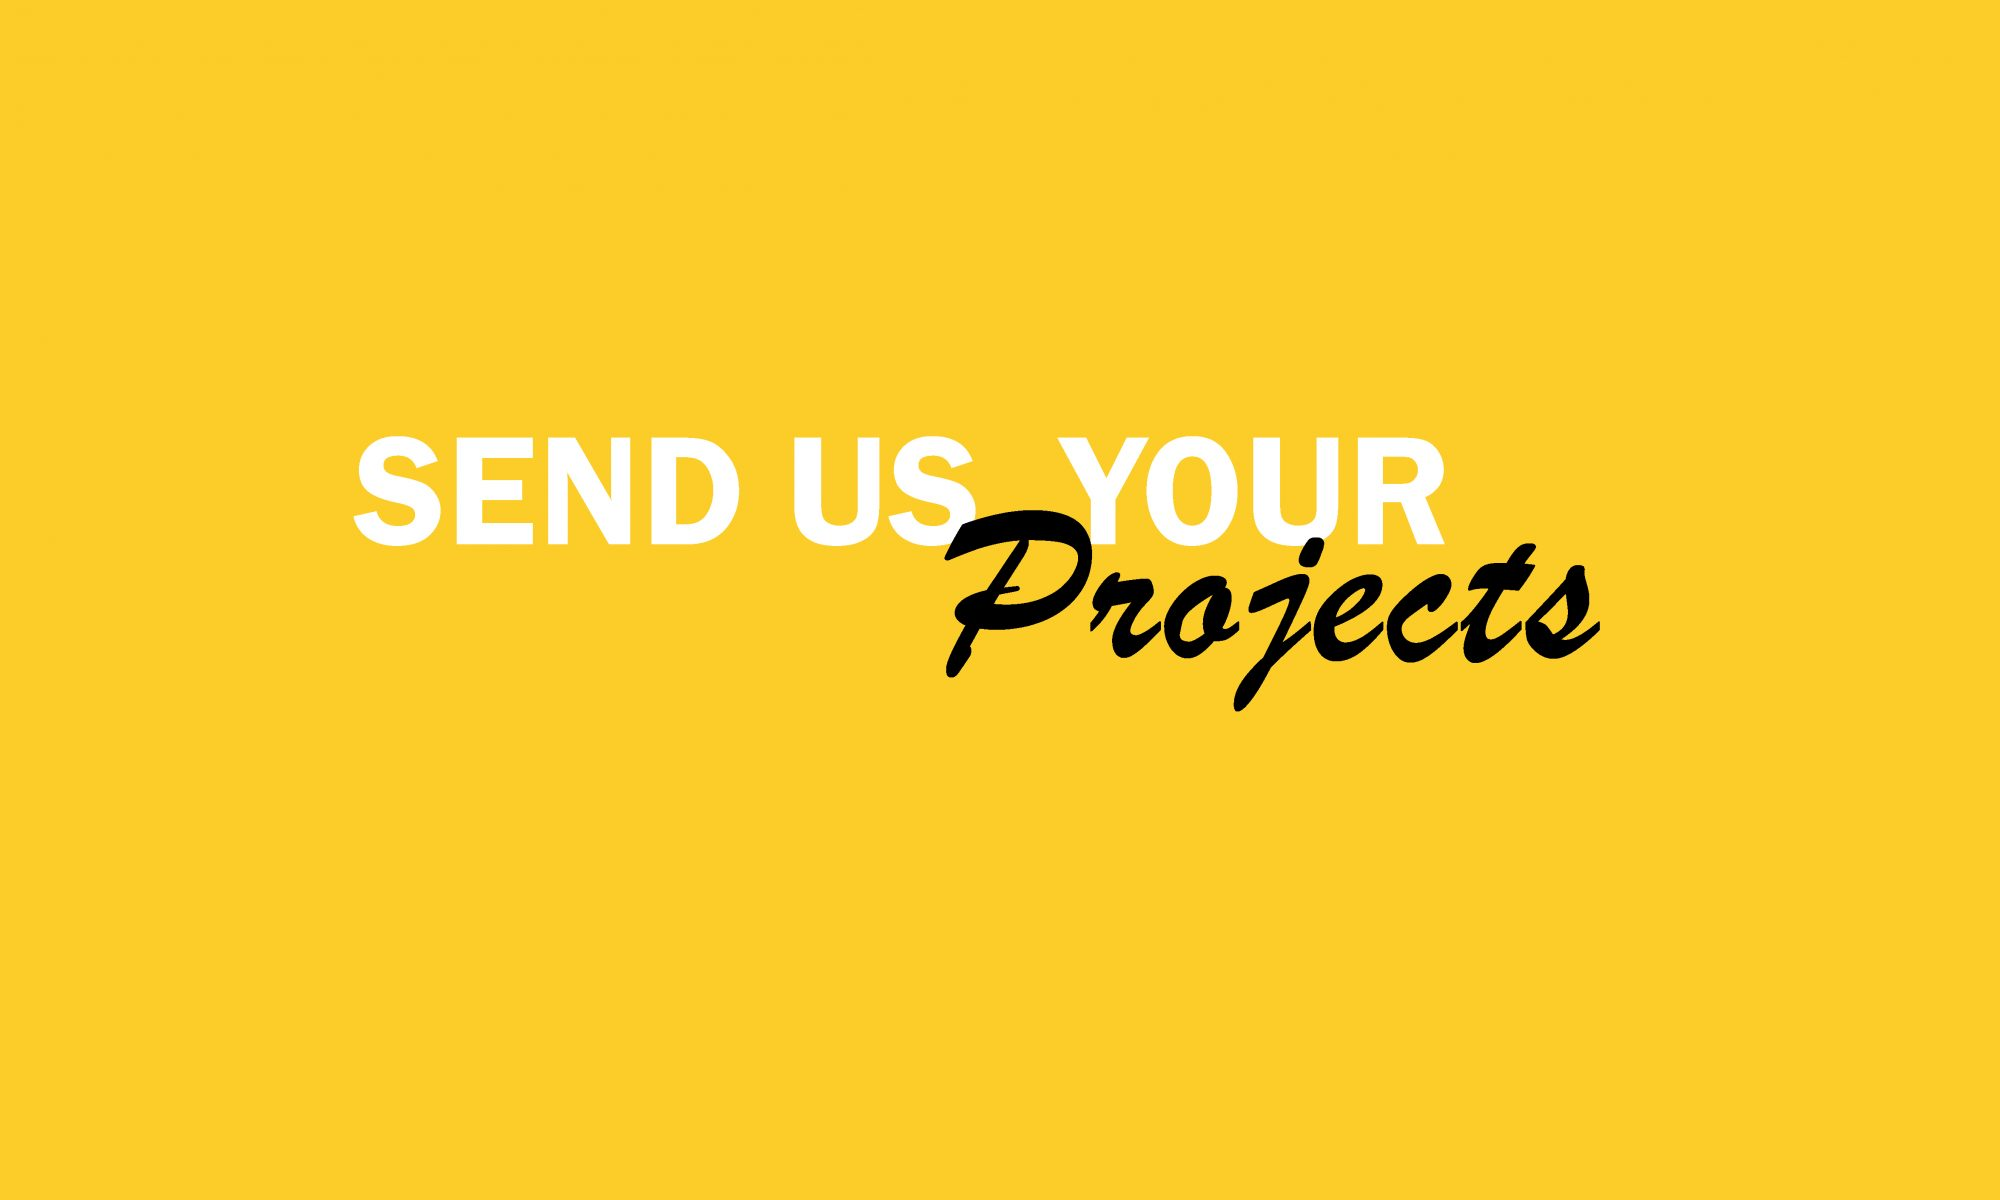 Send Us Your Projects